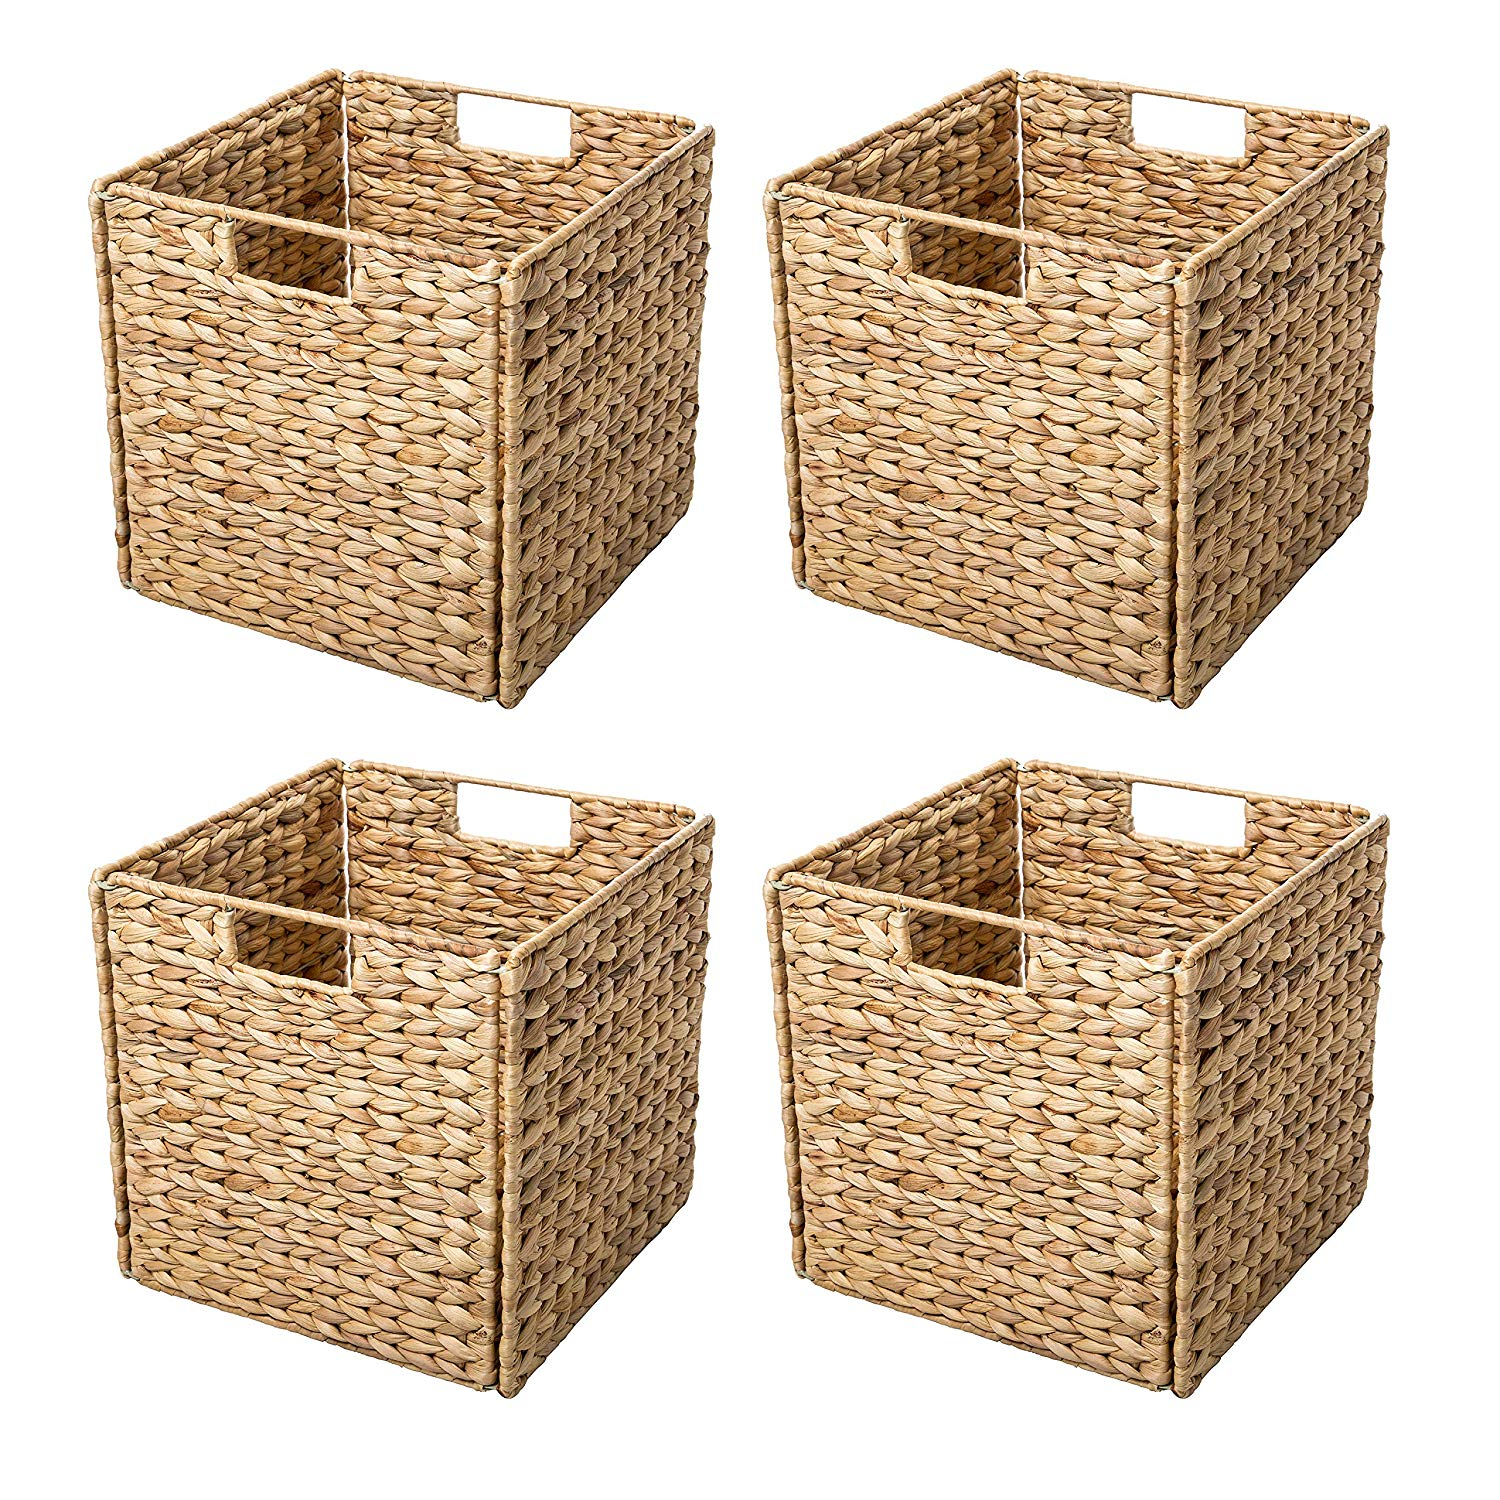 cube baskets